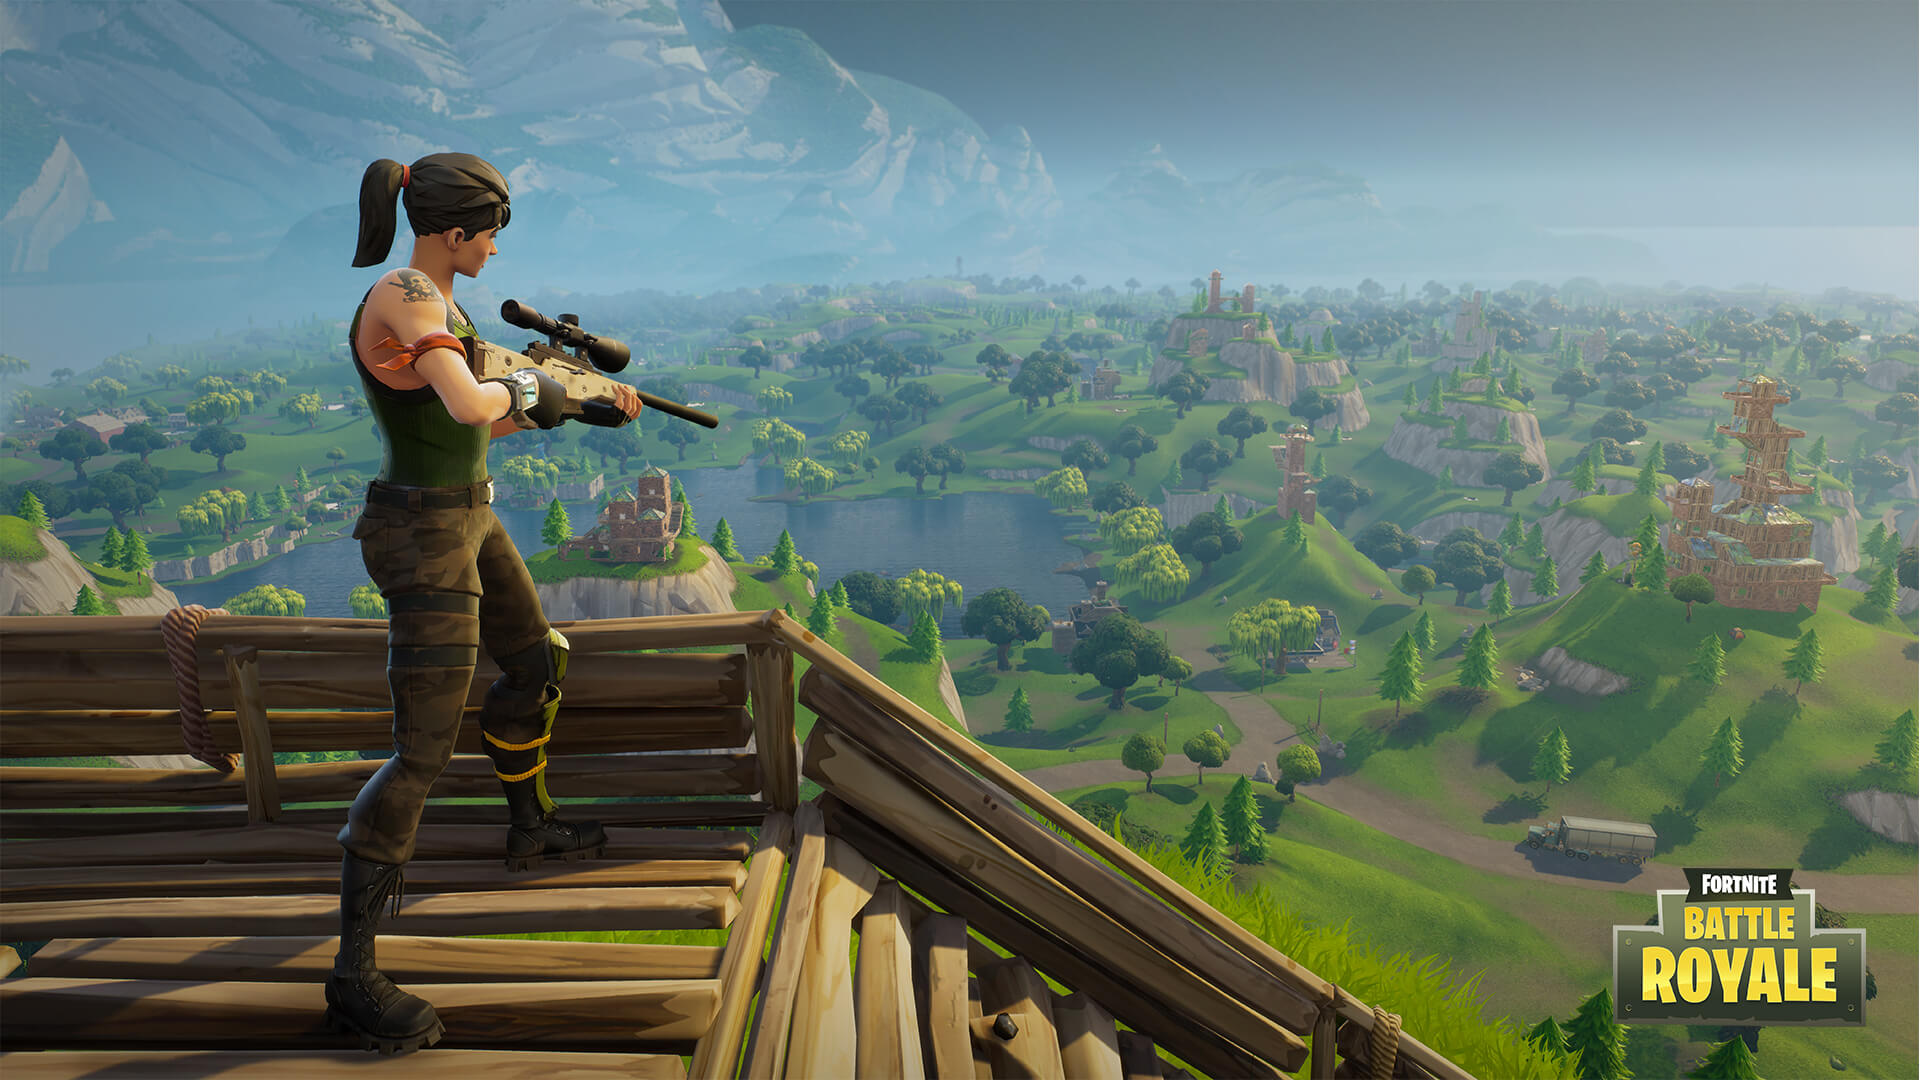 Fortnite Has Surpassed Minecraft In YouTube Viewership And Its Revenue  Keeps Soaring